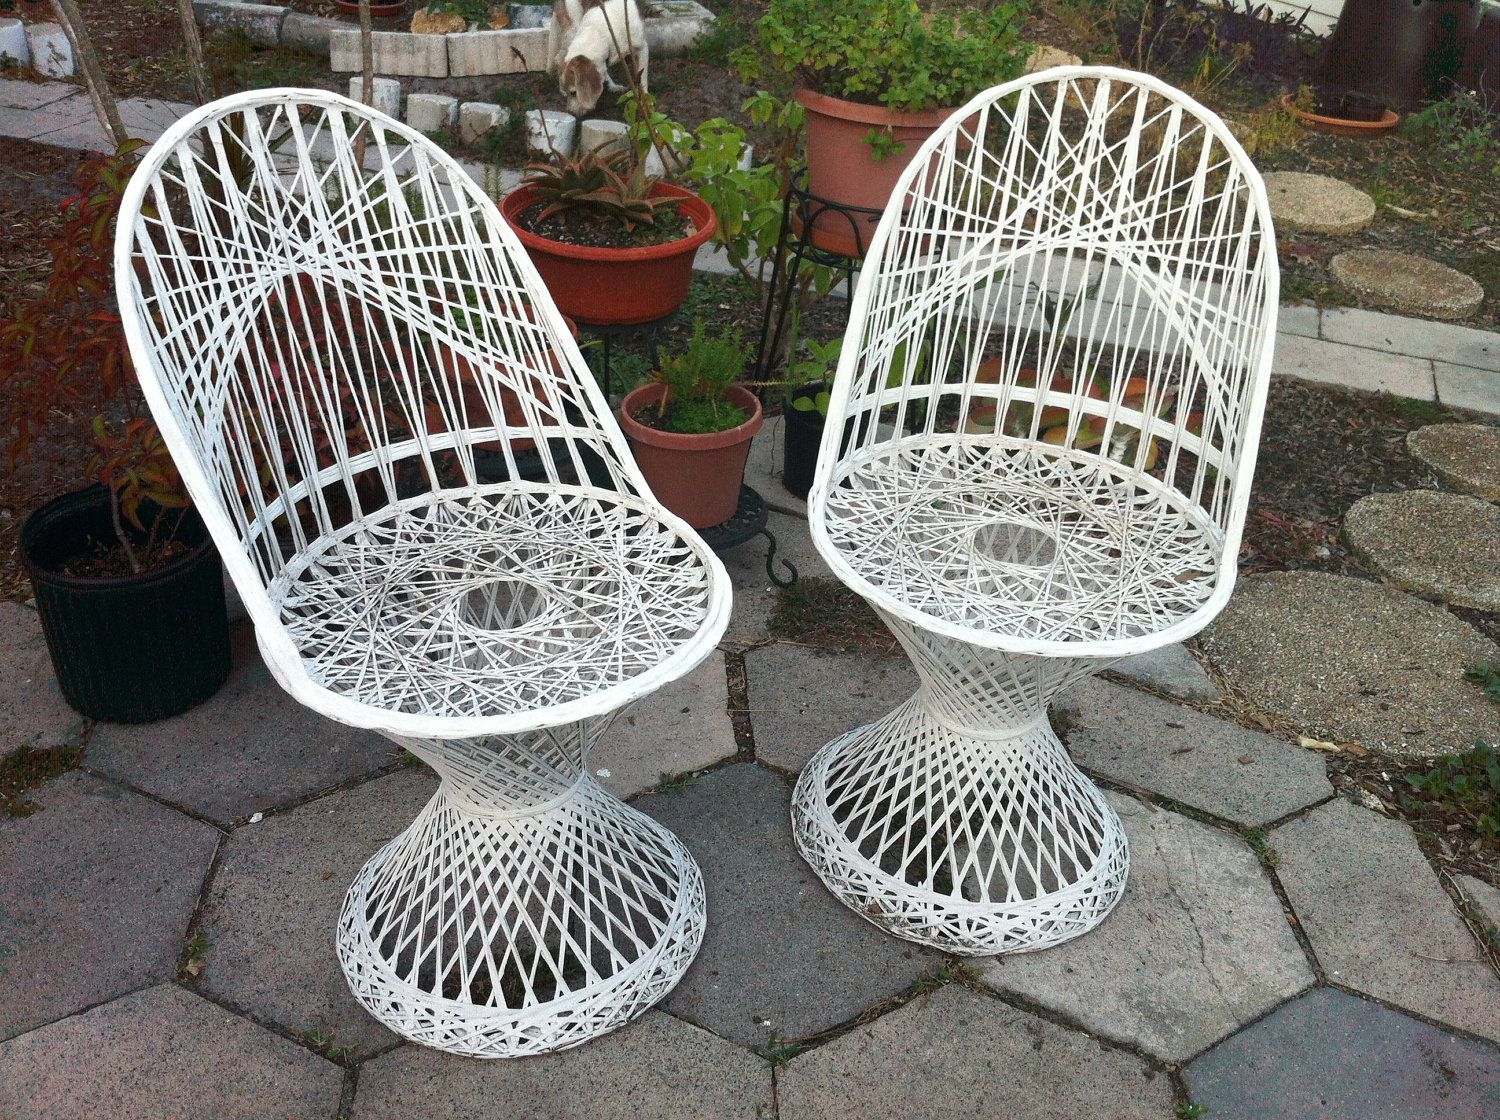 Wrought iron patio chairs vintage - Vintage Russell Woodard Spun Fiberglass Patio Chairs